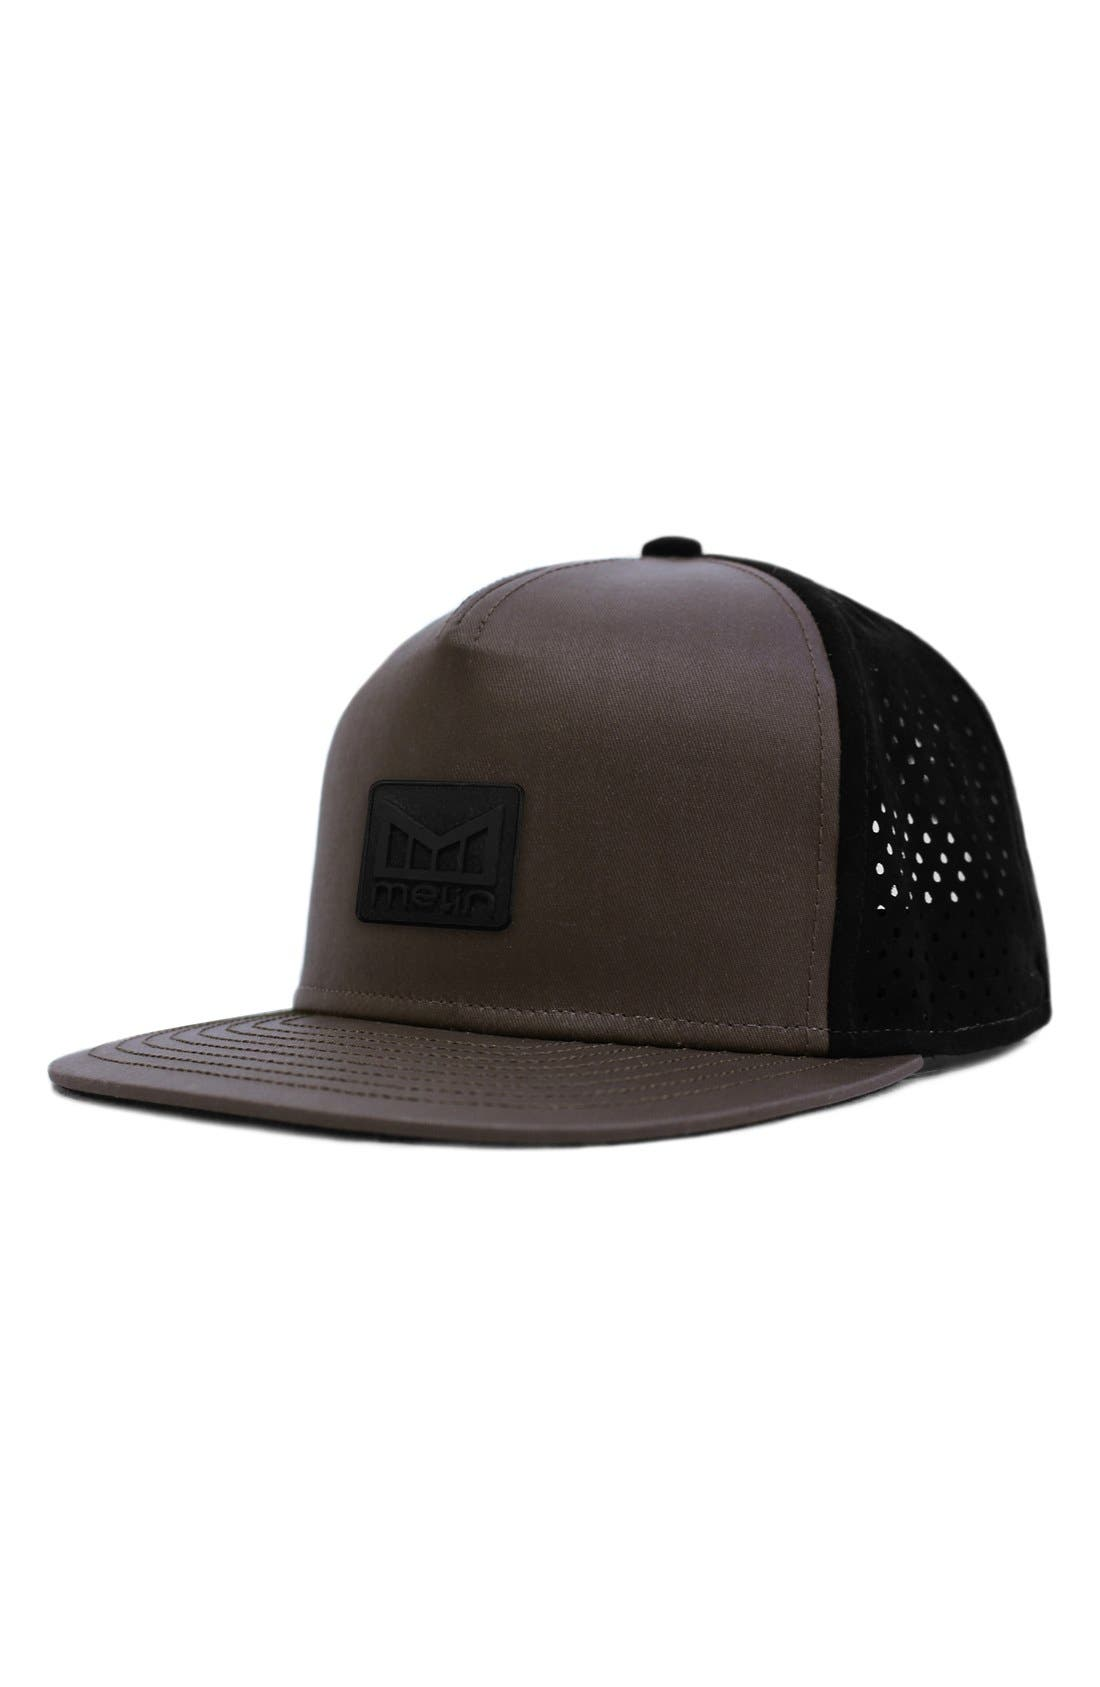 'The Nomad' Split Fit Snapback Baseball Cap,                         Main,                         color, Taupe